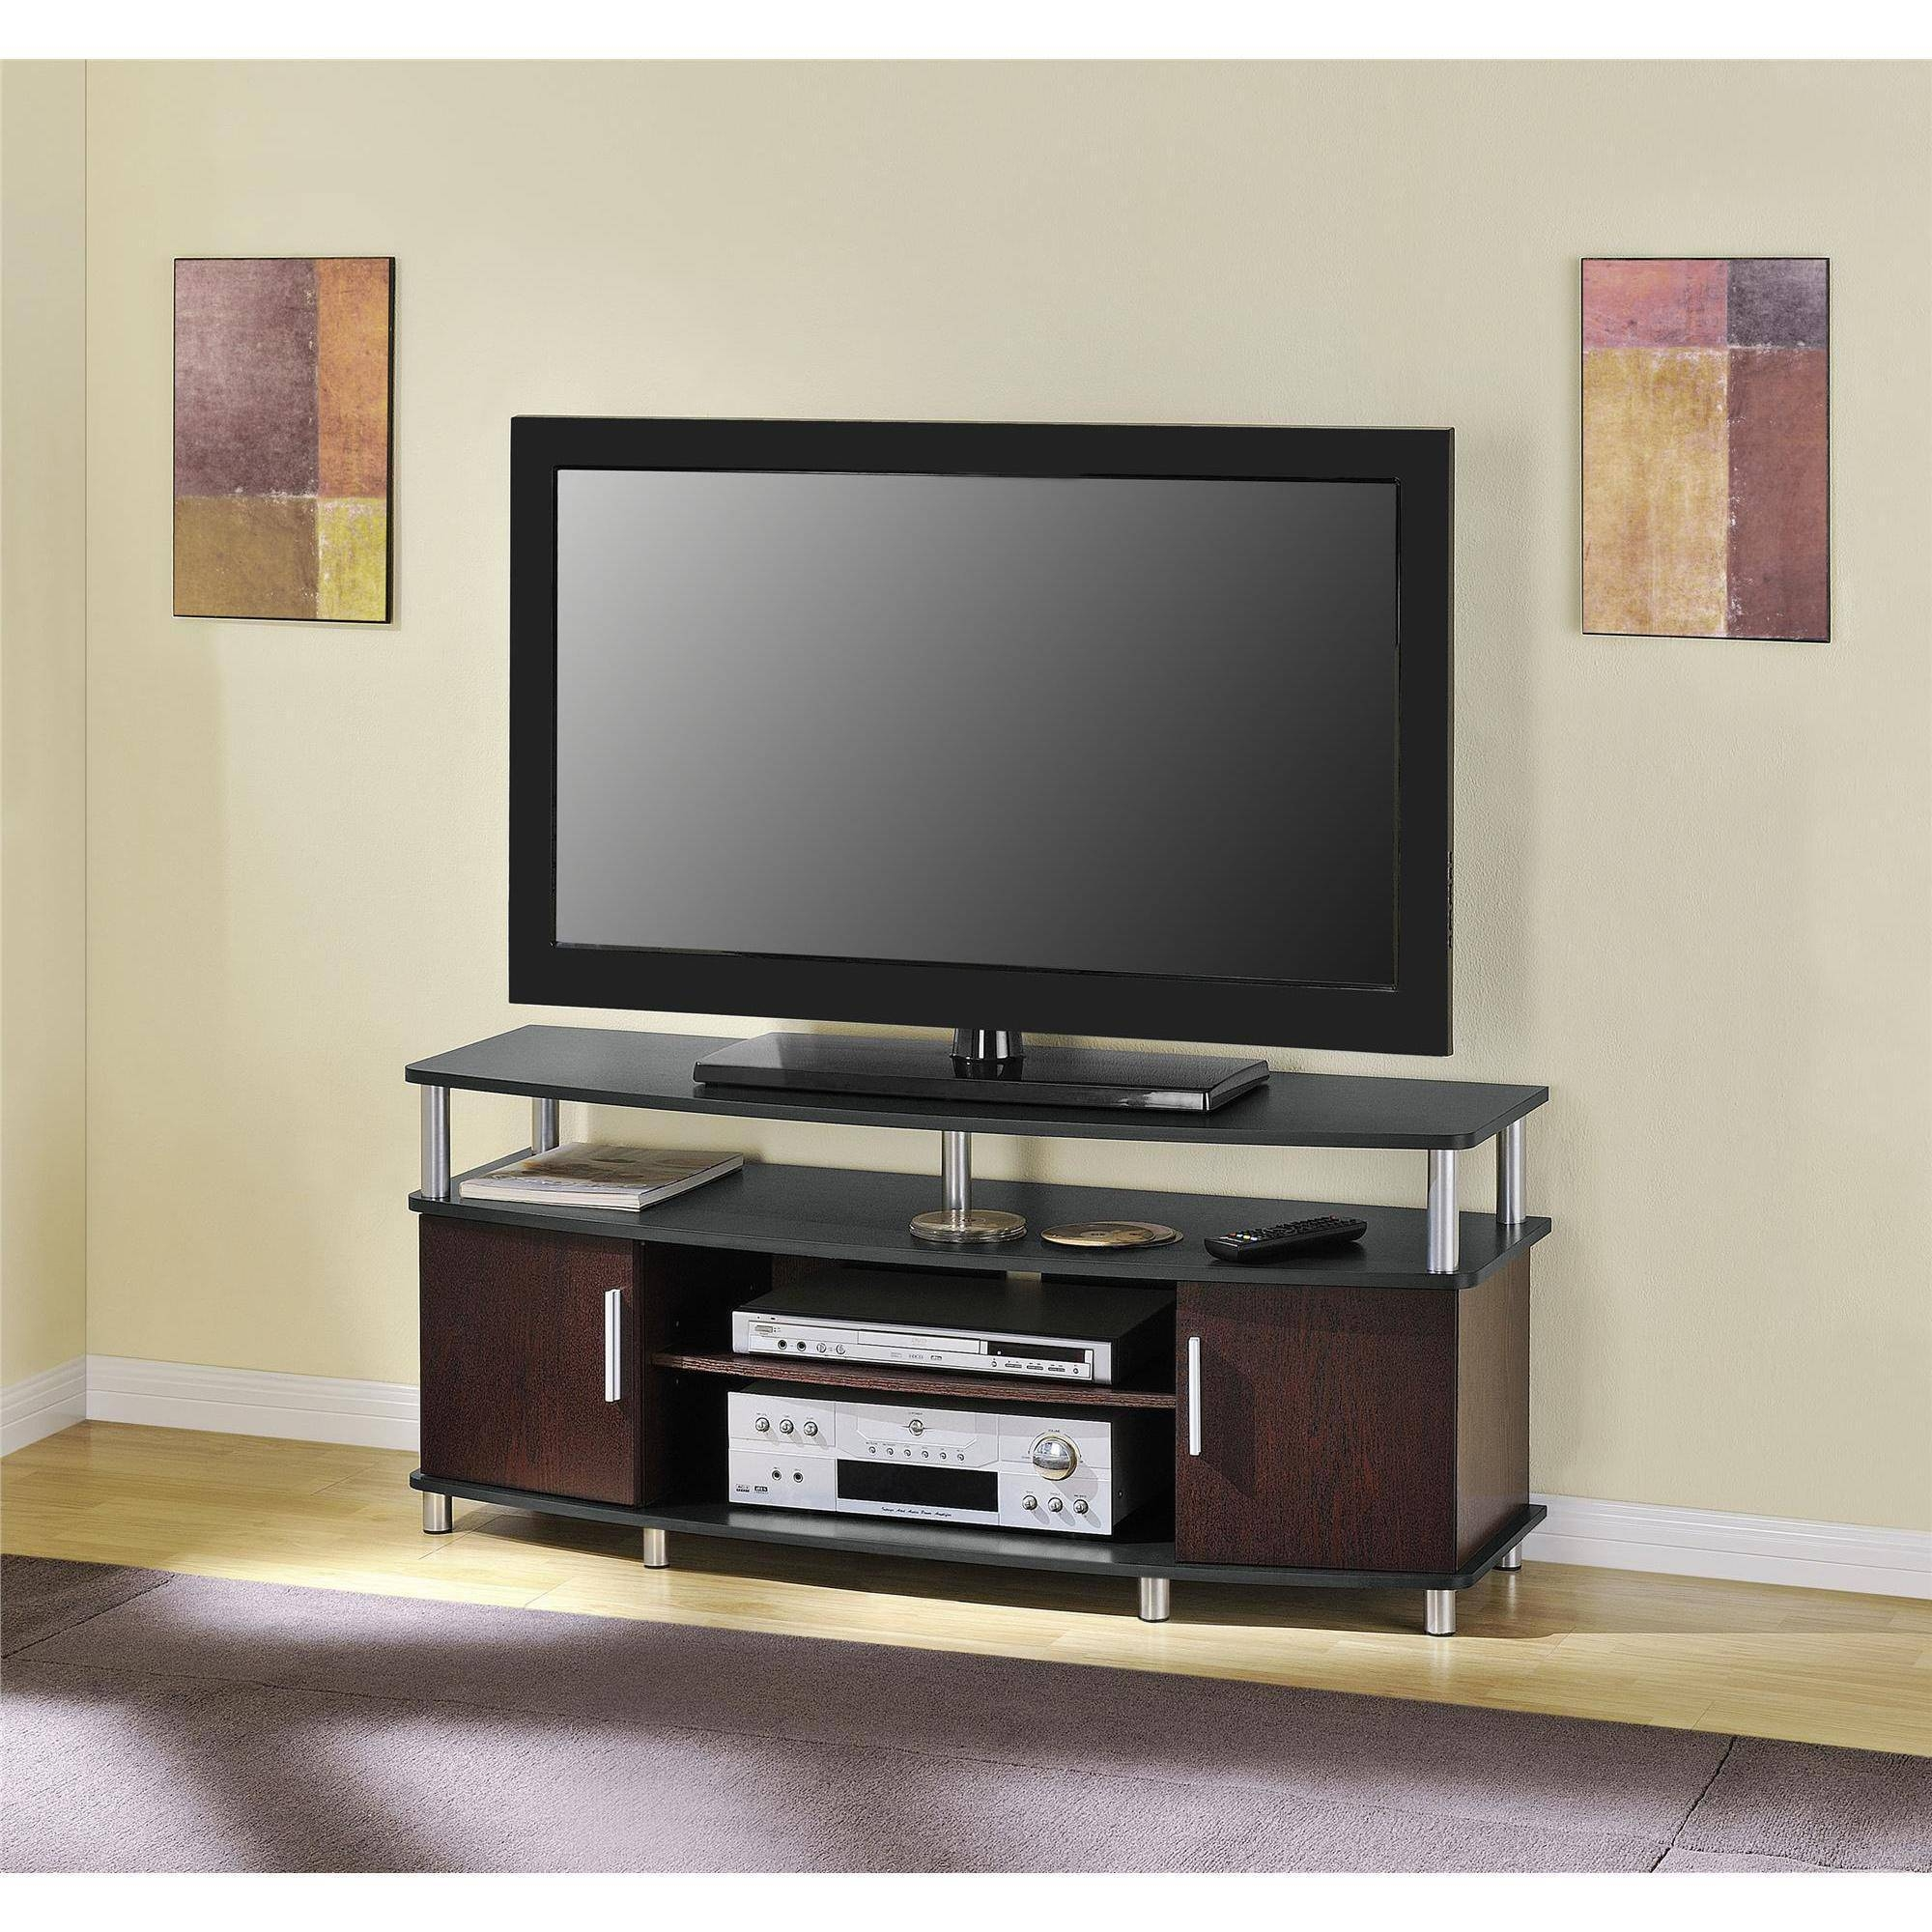 15 photos corner 60 inch tv stands. Black Bedroom Furniture Sets. Home Design Ideas